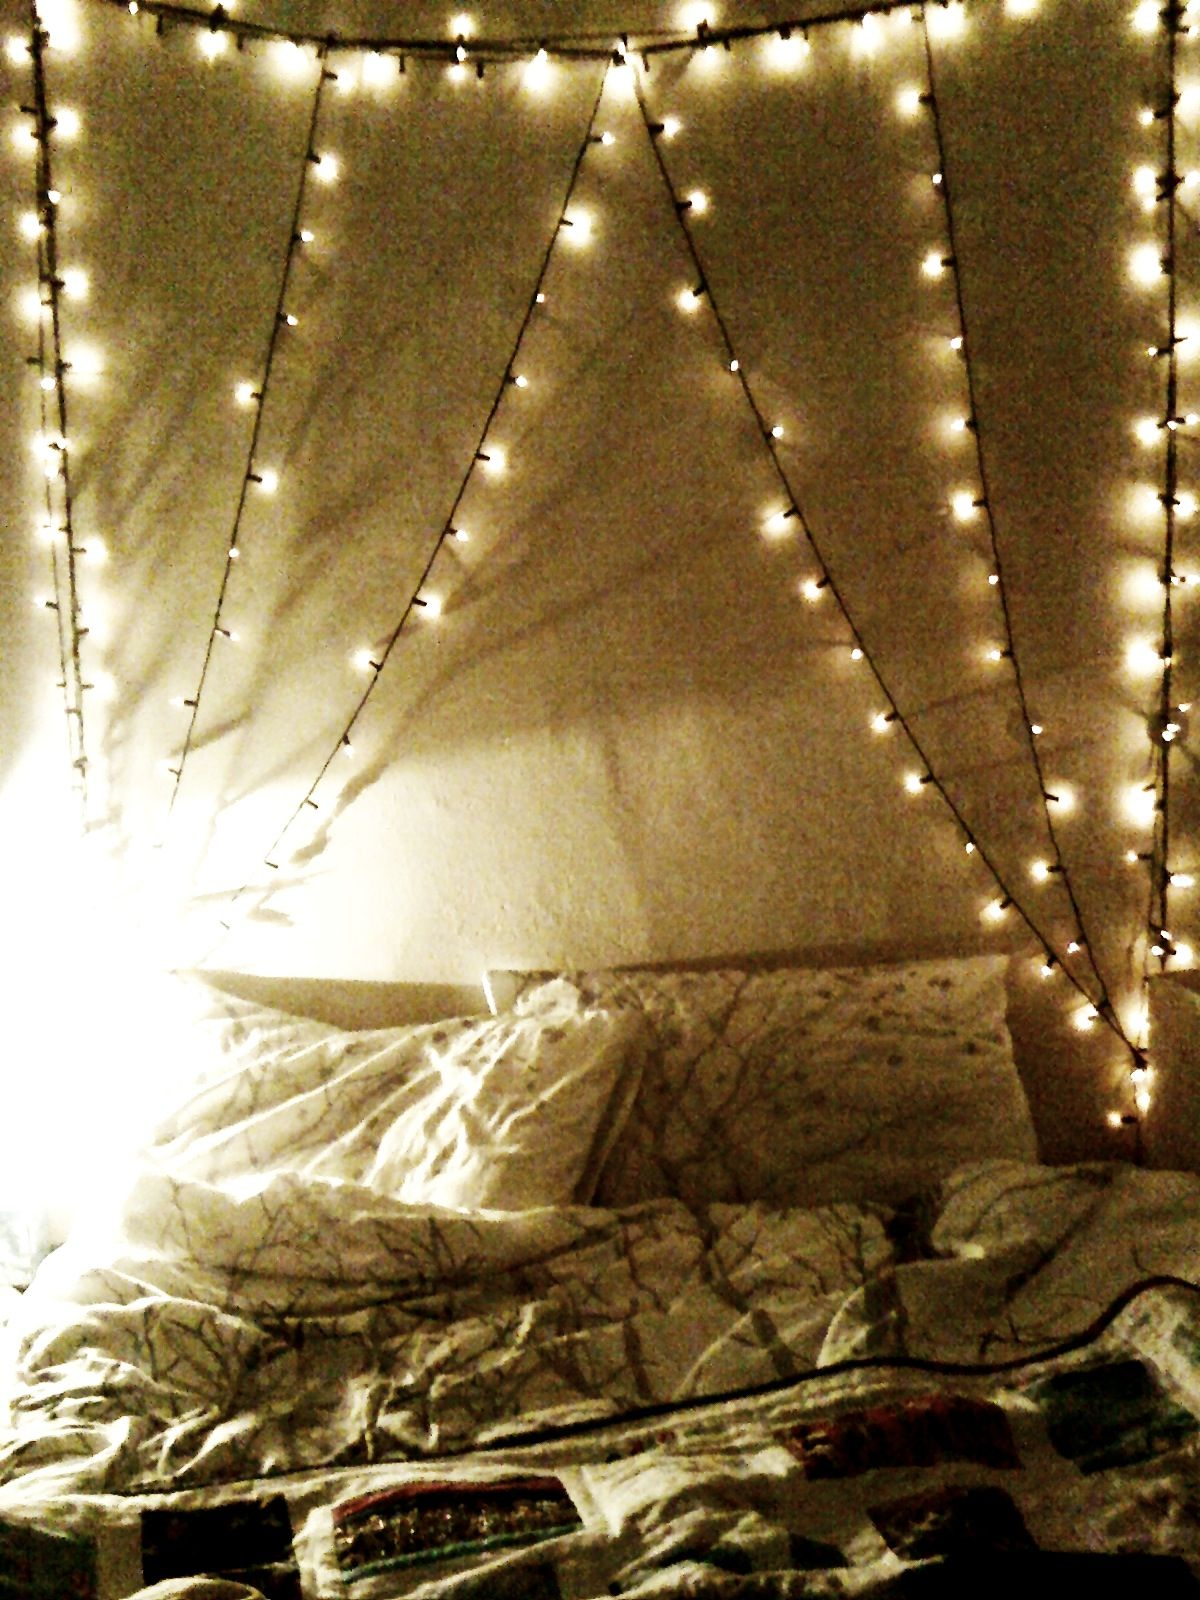 Fairy lights bedroom tumblr - 84 Best Images About Tumblr Bedrooms On Pinterest Tumblr Room Wall Quotes And Search